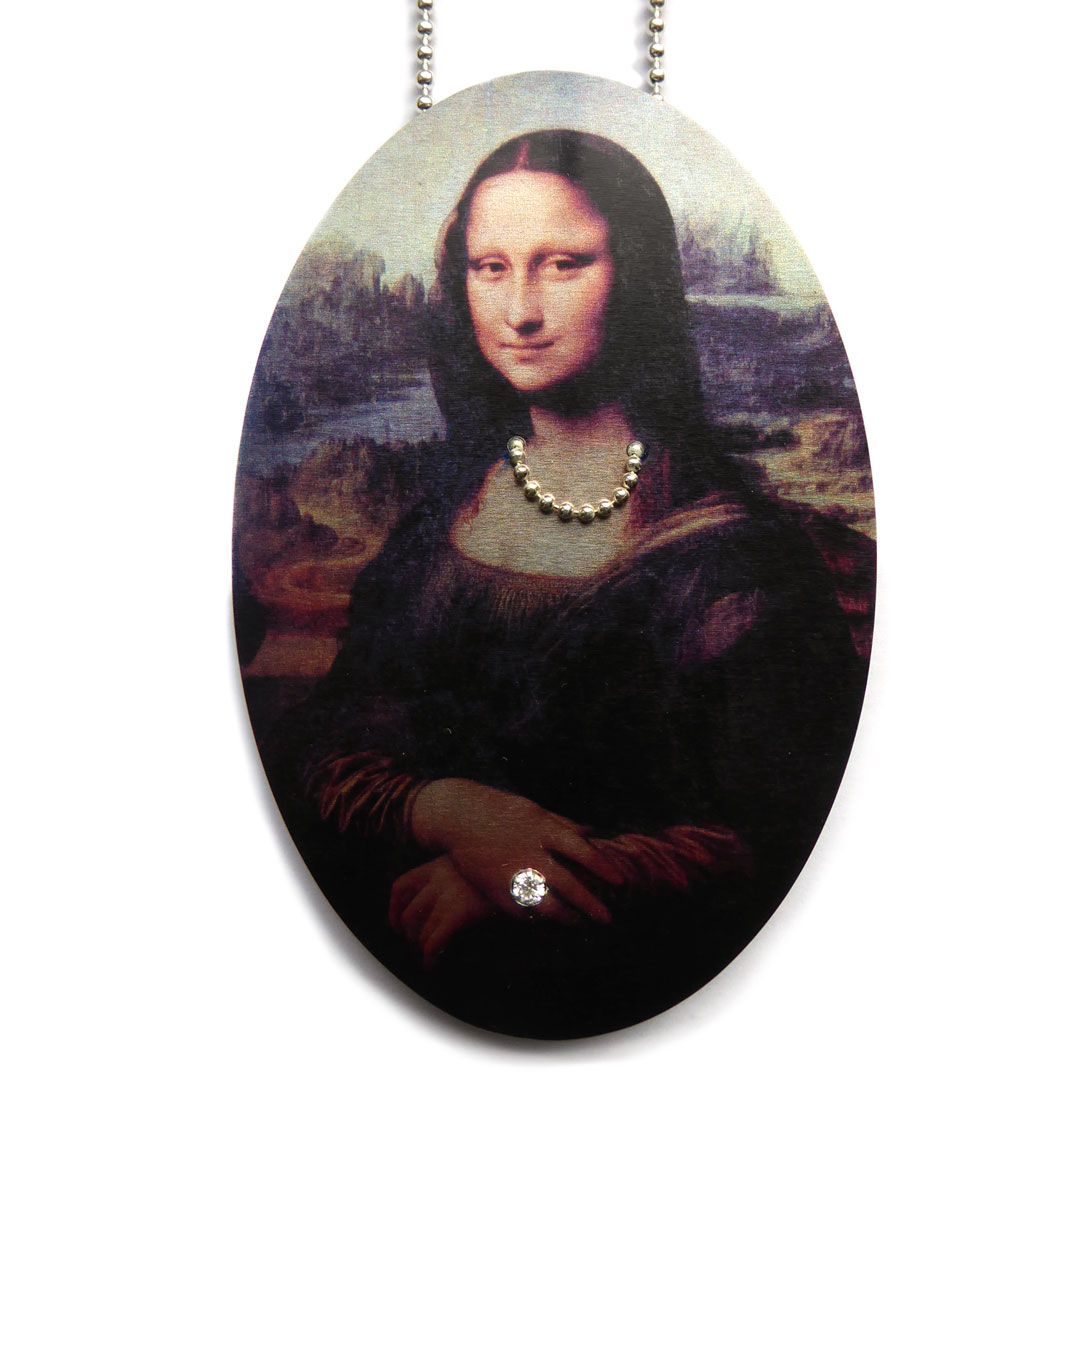 Herman Hermsen, Mona Lisa Chained, 2015, necklace; print on aluminium, wood, silver, zirconia, 320 x 60 x 10 mm, €600